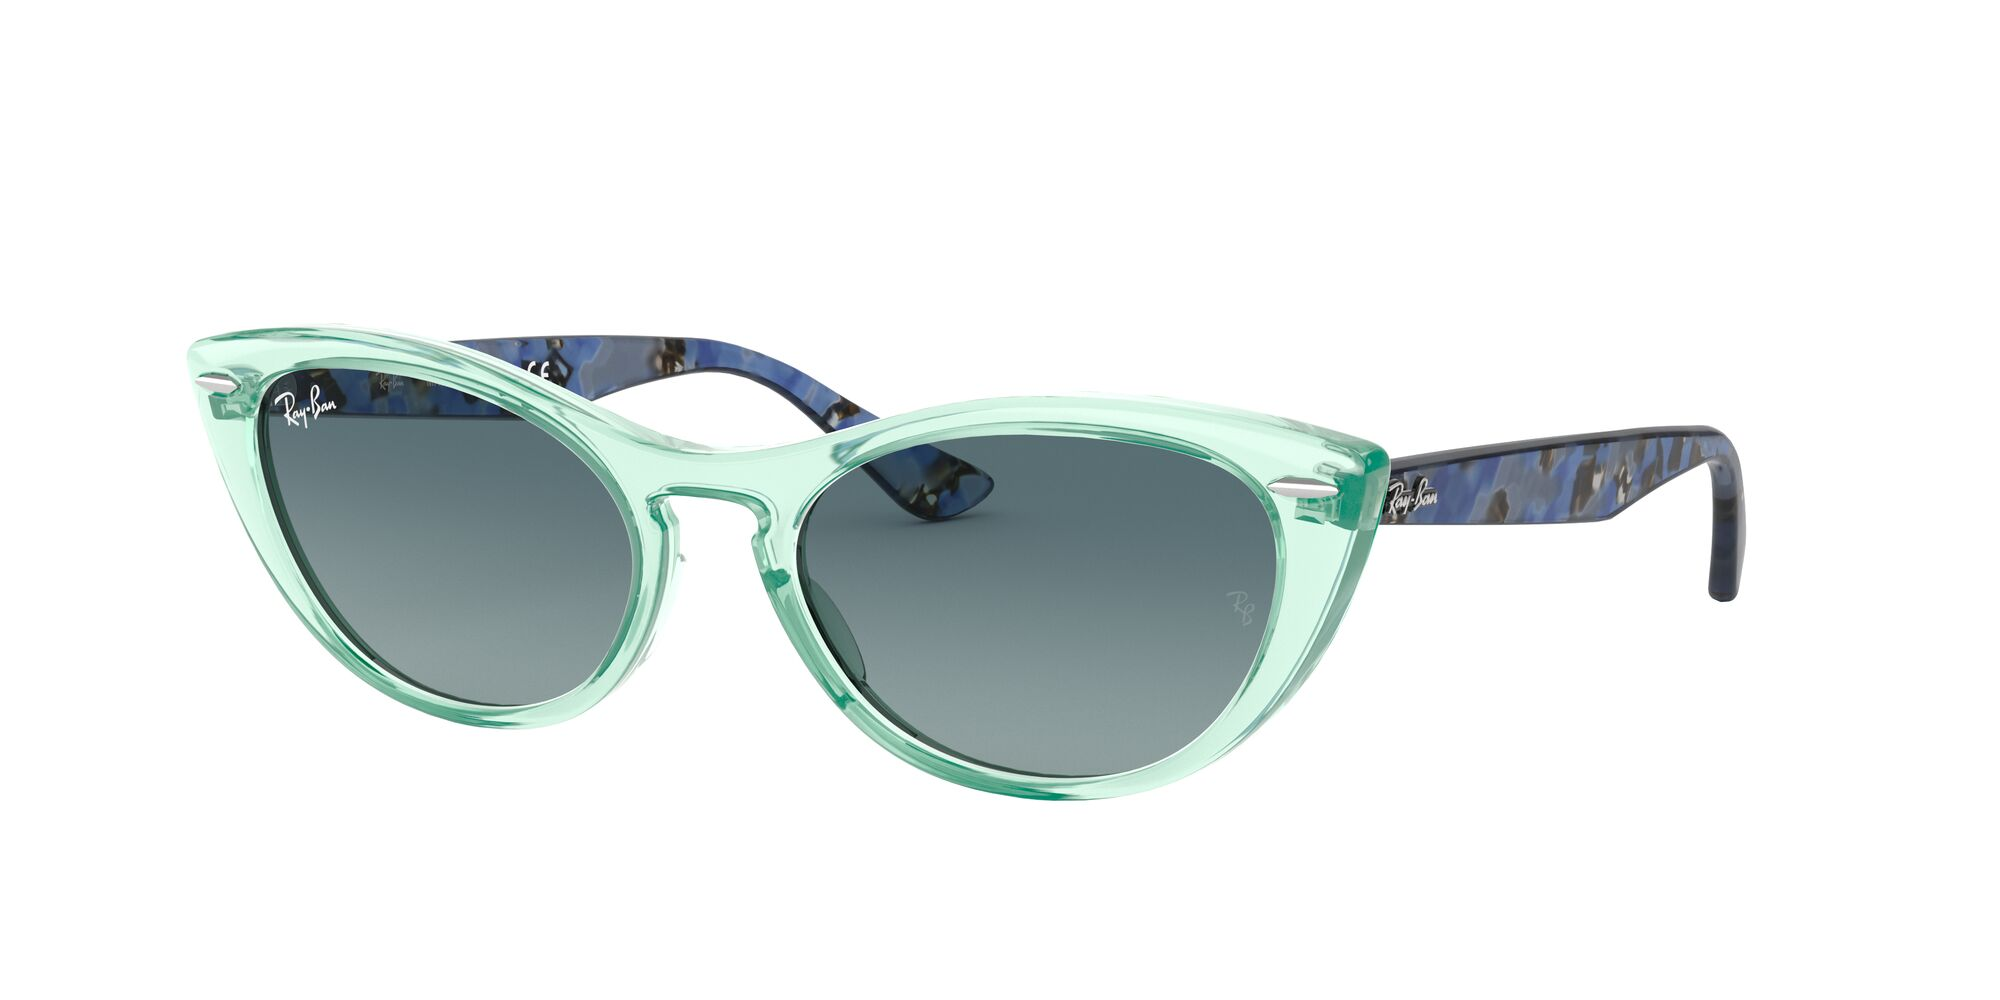 Angle_Left01 Ray-Ban Ray-Ban 0RB4314N 12853M 53/18 Transparant, Groen/Blauw